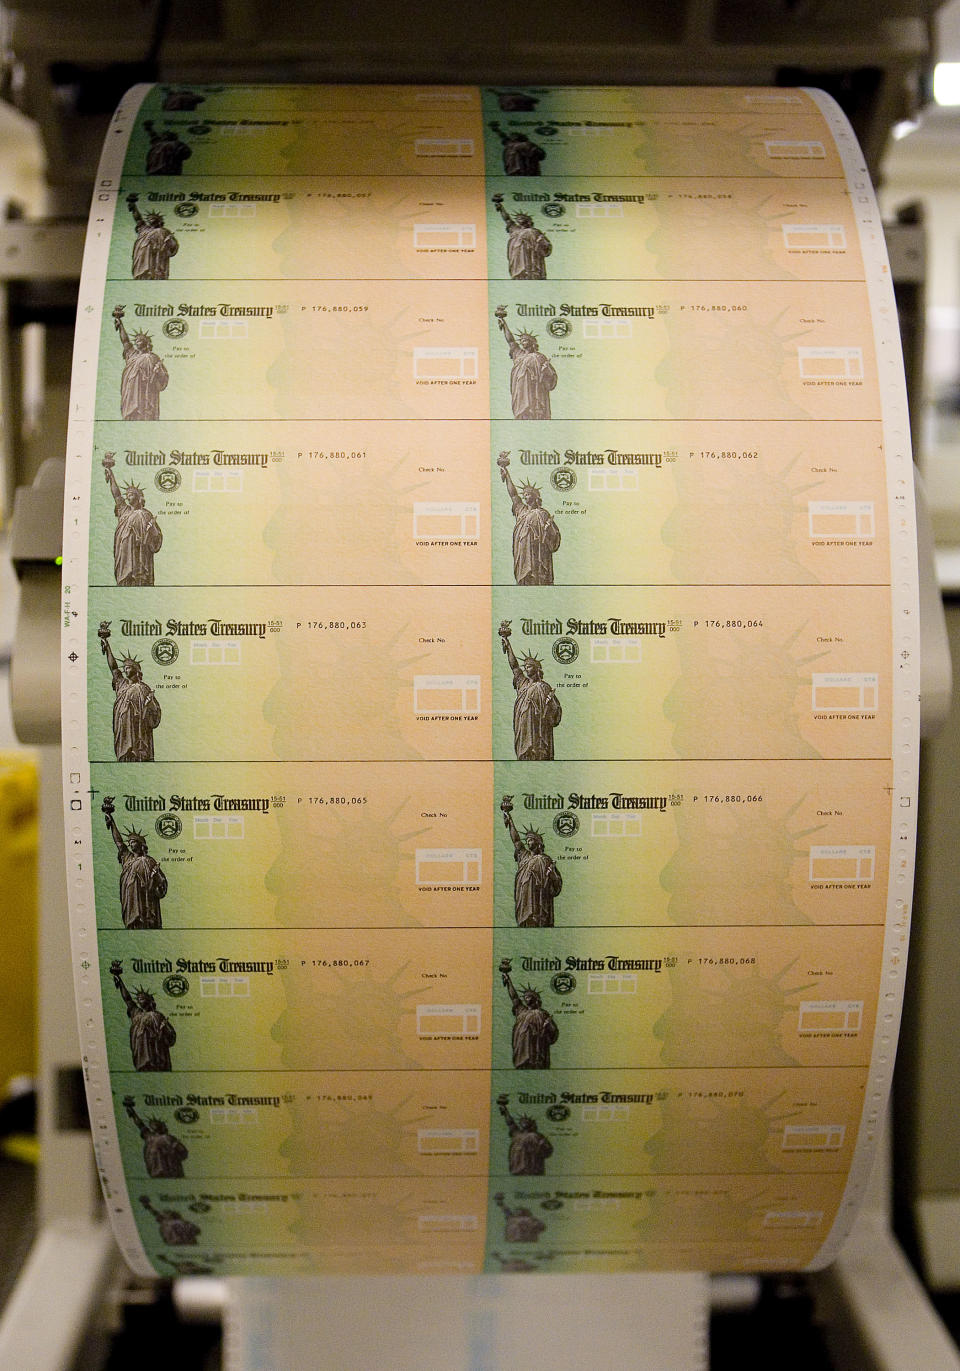 Economic stimulus checks are prepared for printing at the Philadelphia Financial Center May 8, 2008 in Philadelphia, Pennsylvania. (Photo by Jeff Fusco/Getty Images)